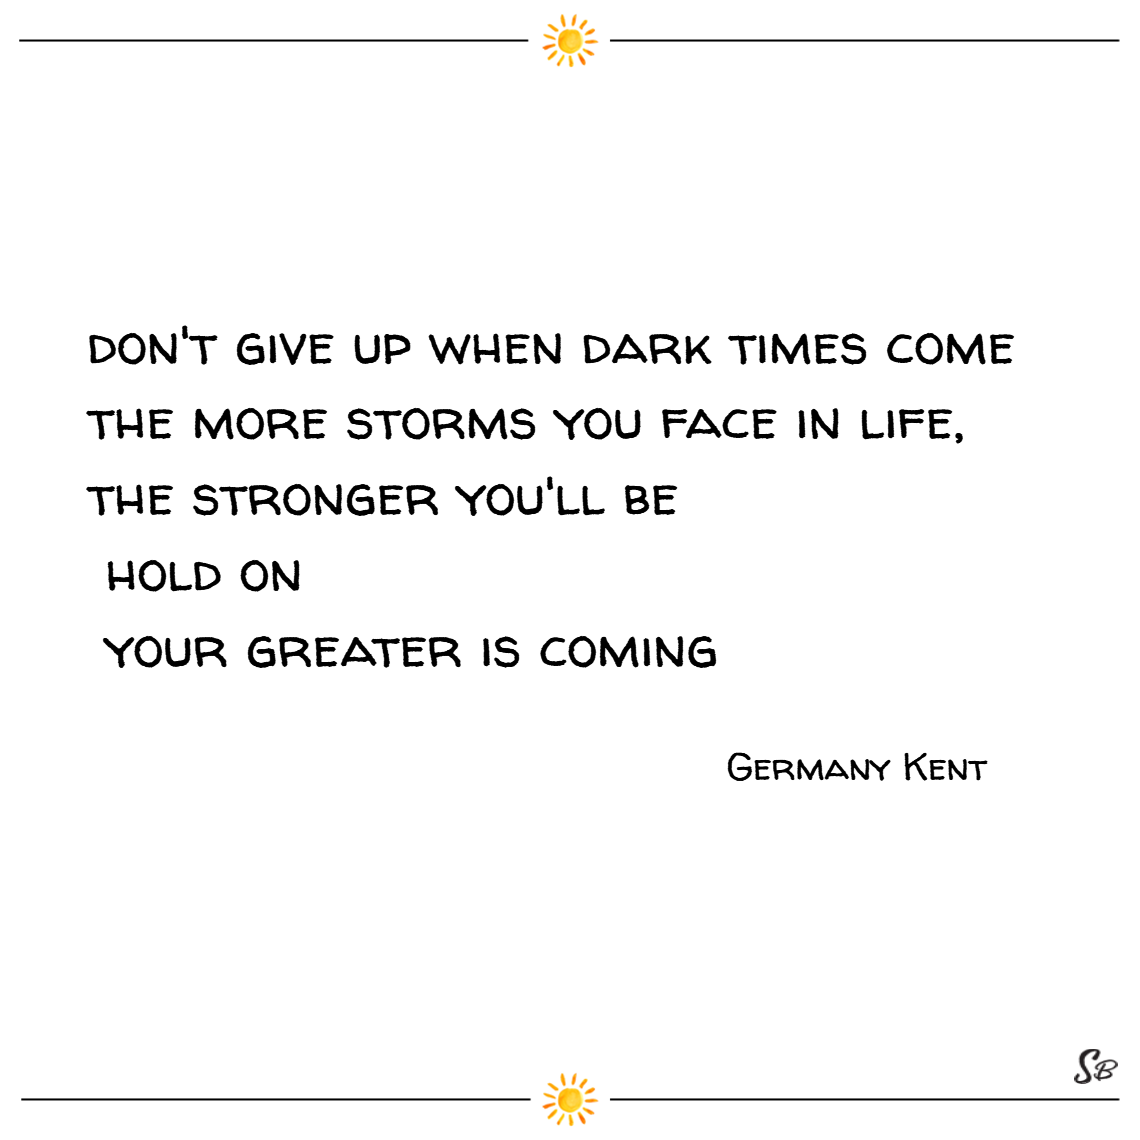 Don't give up when dark times come. the more storms you face in life, the stronger you'll be. hold on. your greater is coming. – germany kent